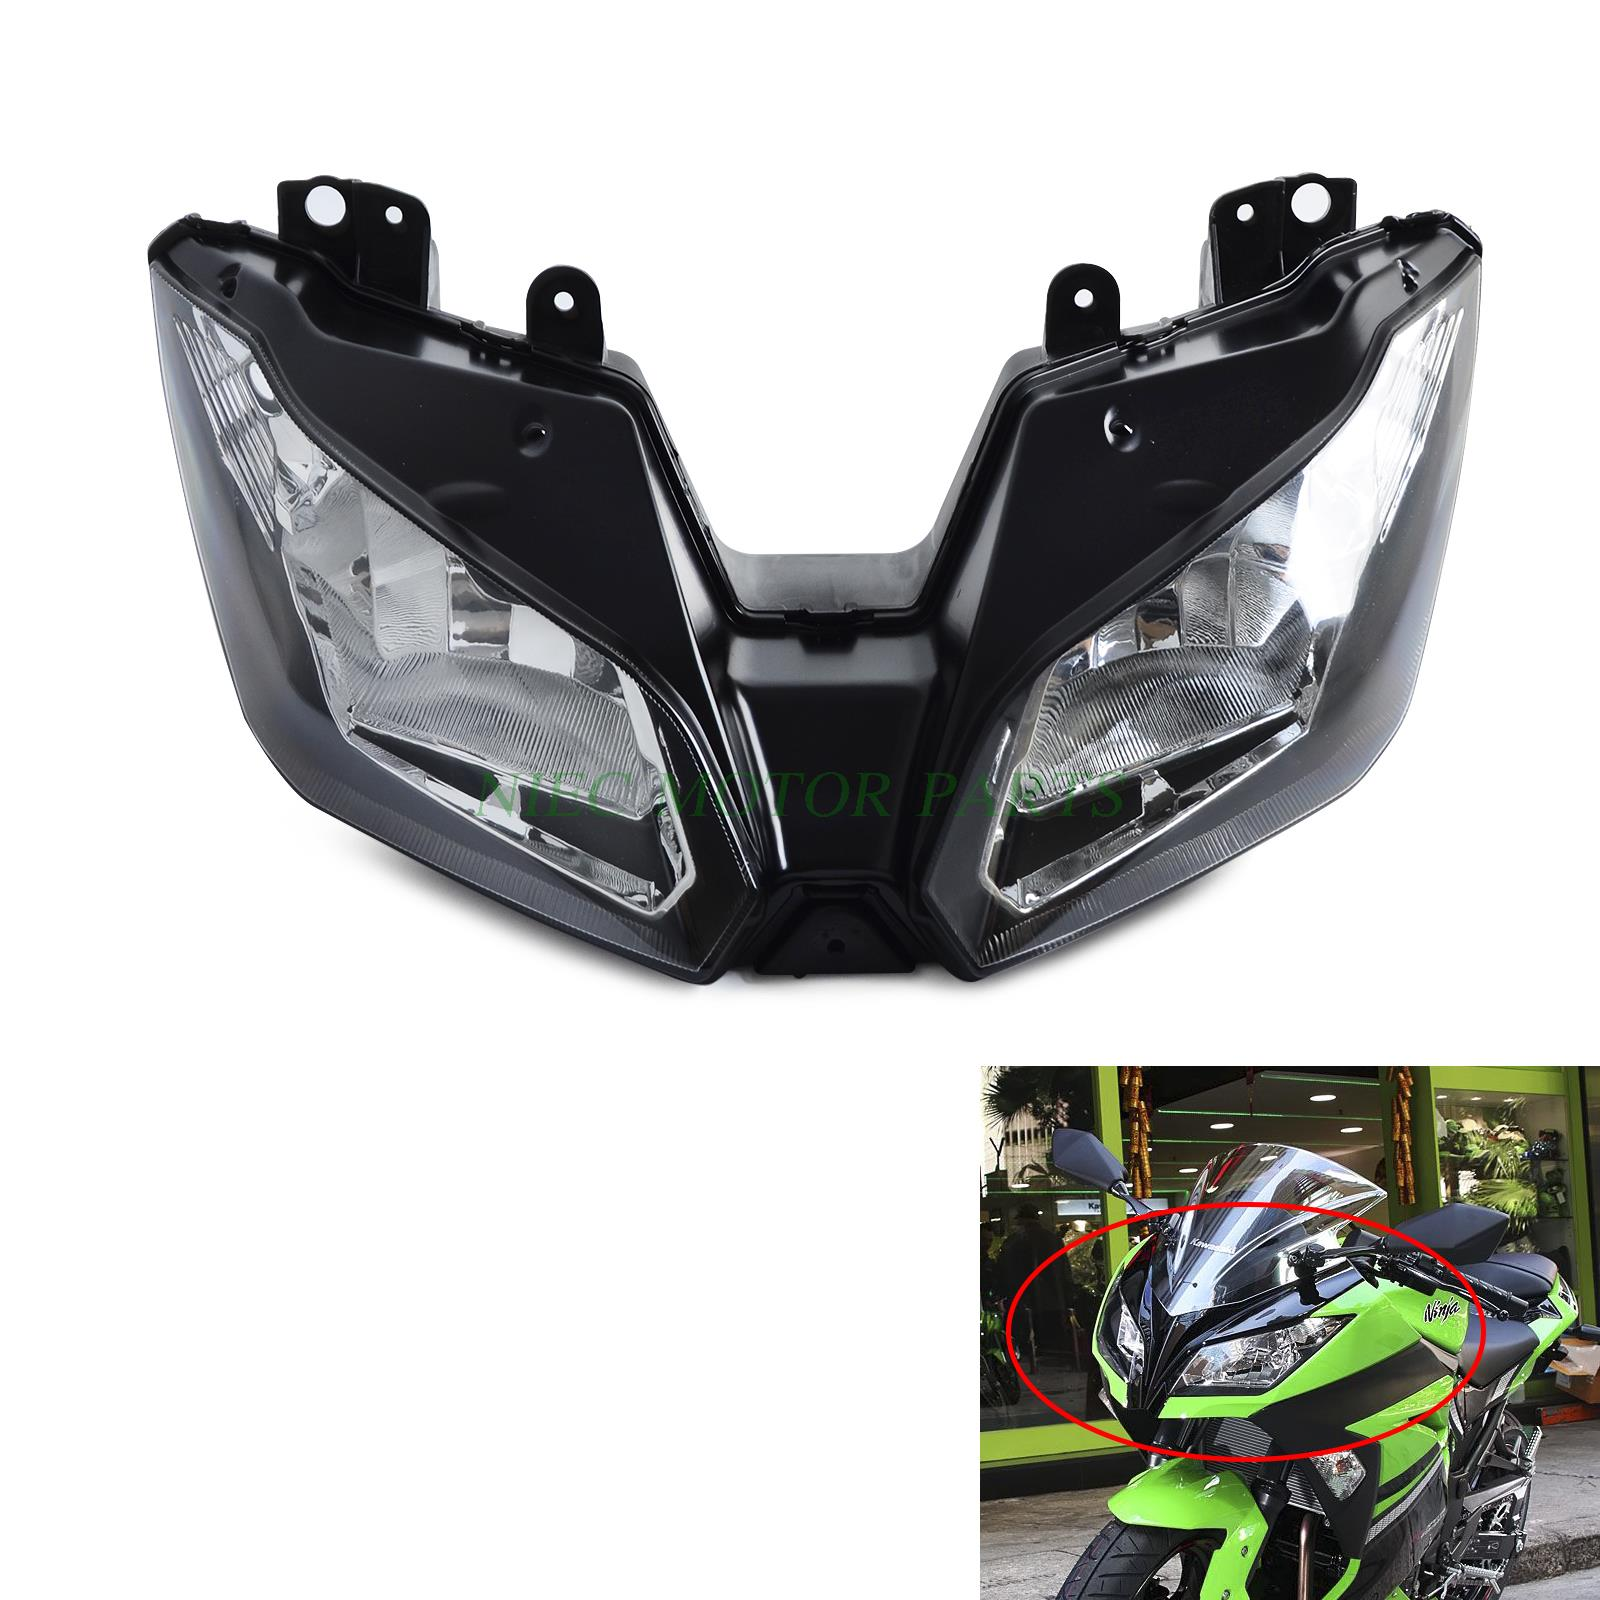 Motorcycle Headlights Headlamp Head Light Lamp Assembly For Kawasaki NINJA 300 ABS EX300 2013-2015 VERSYS 650 1000 2015 2016